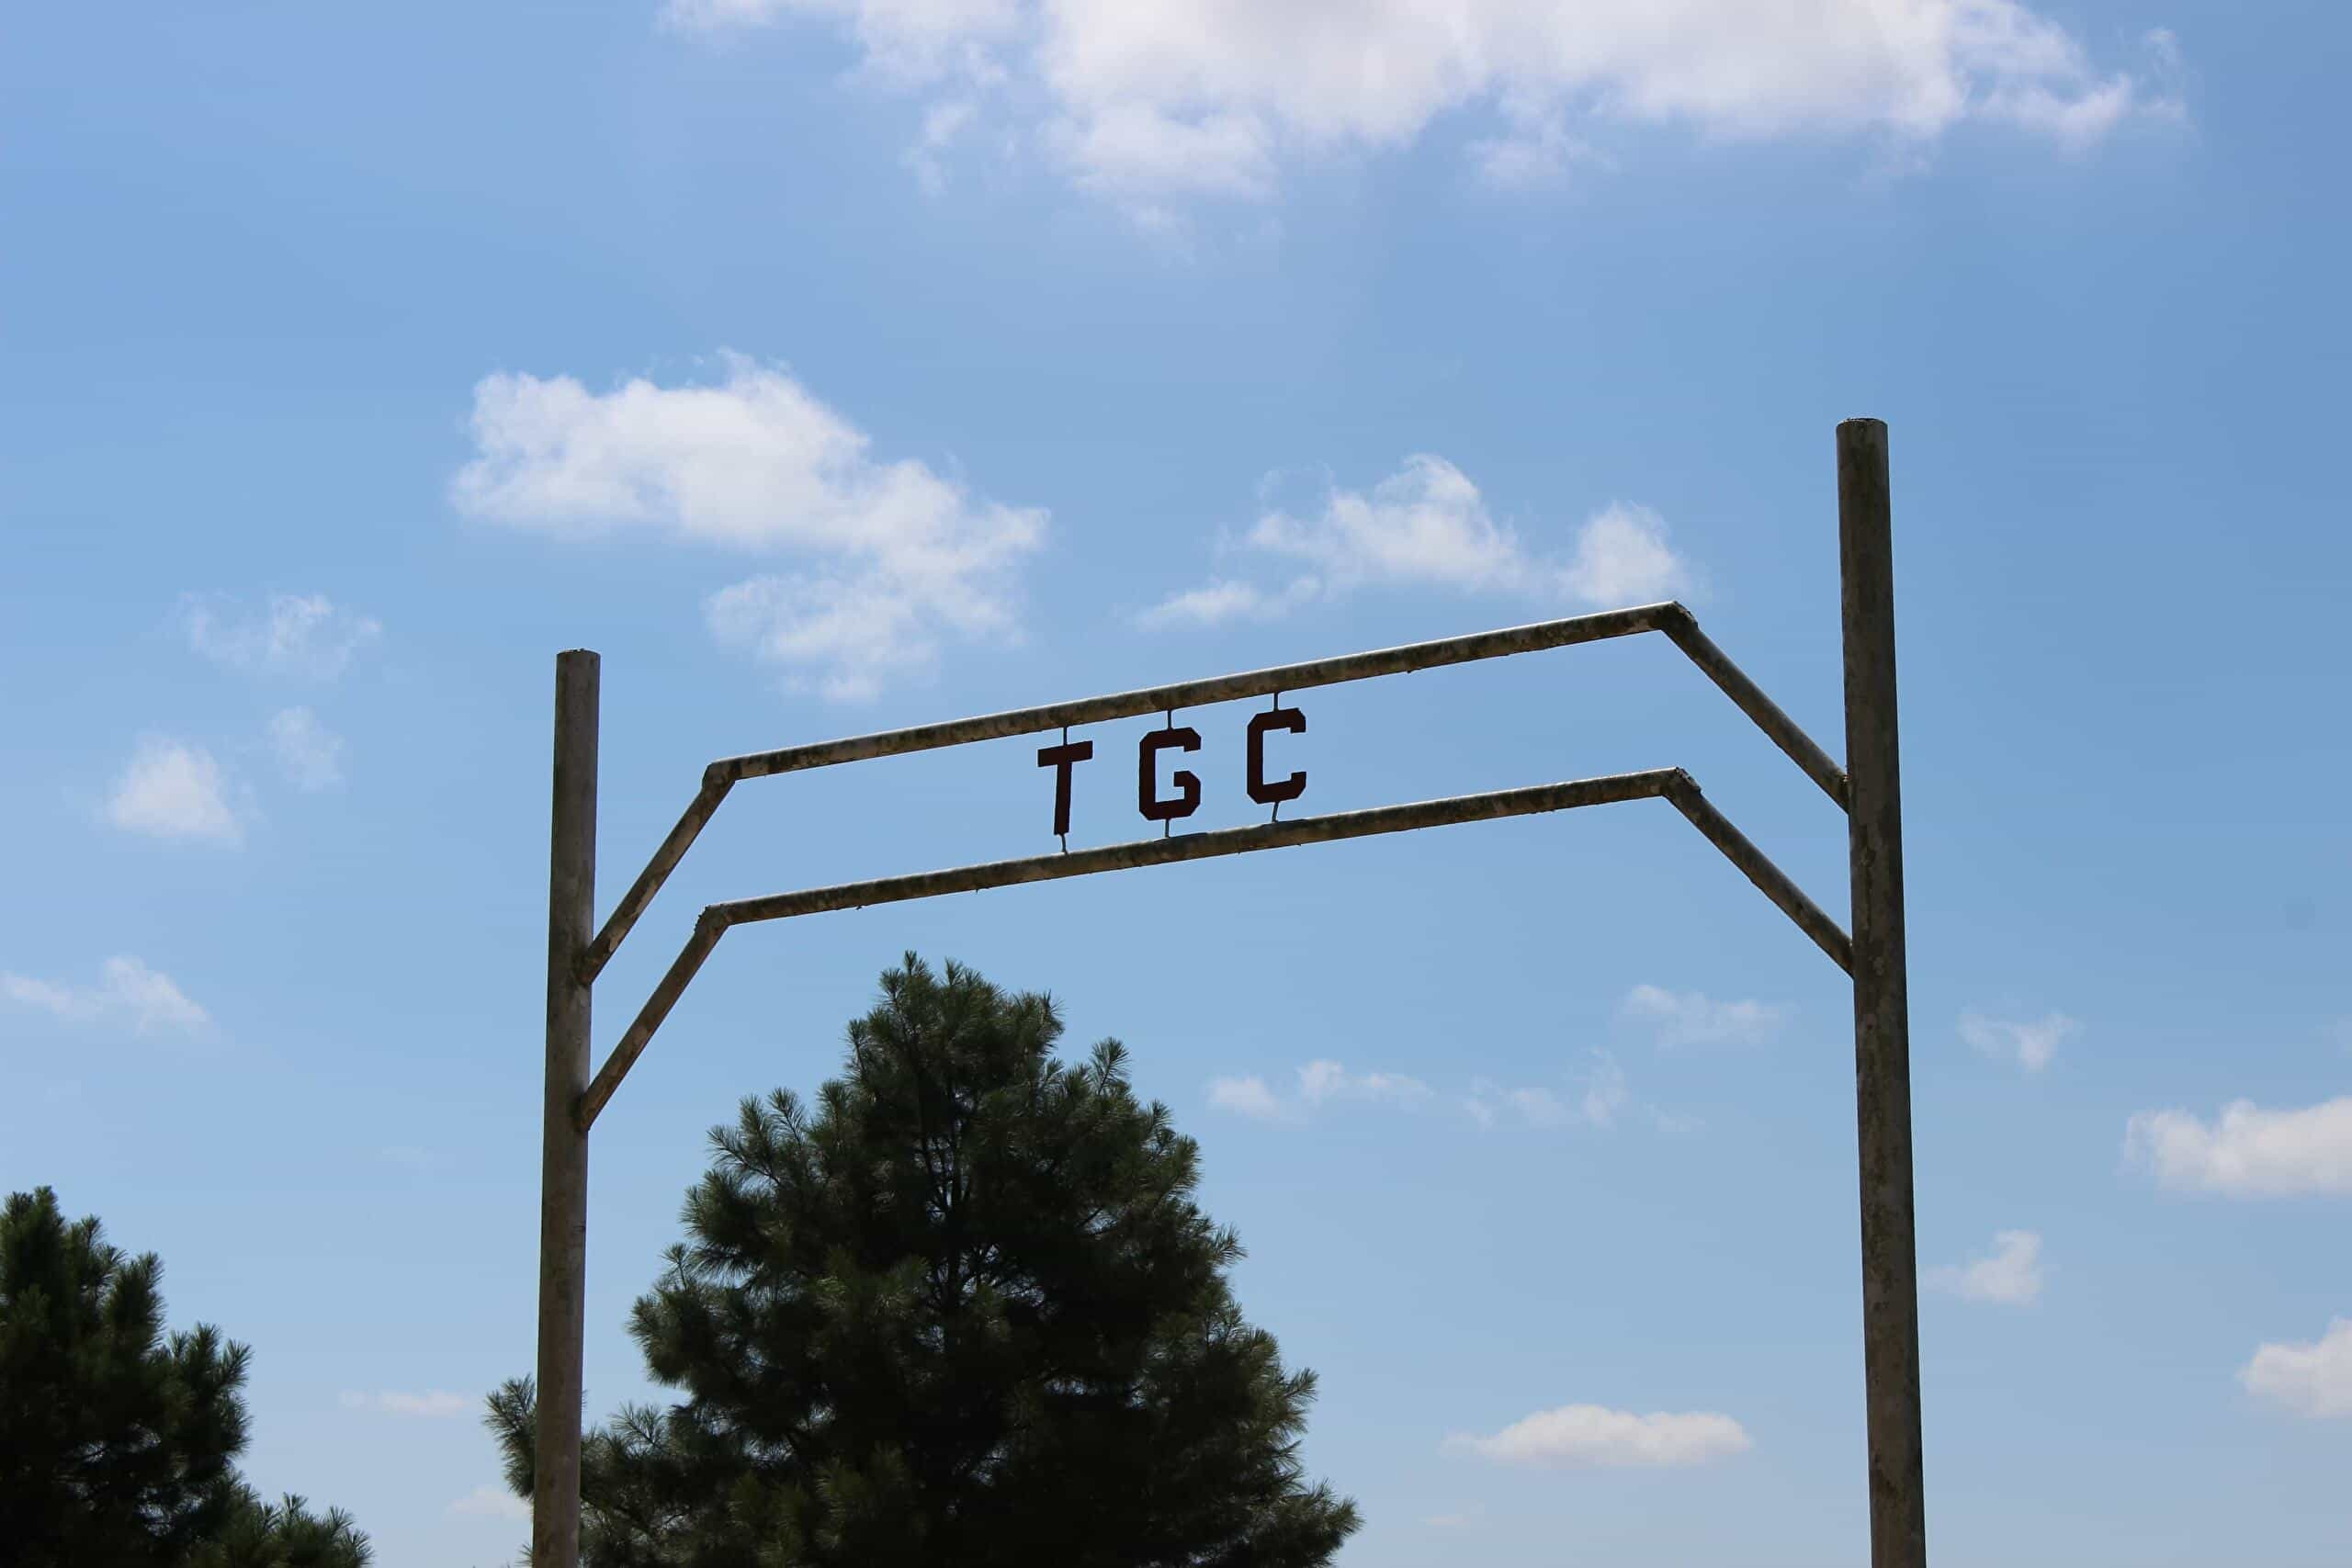 Entrance to the Tishomingo Golf Course